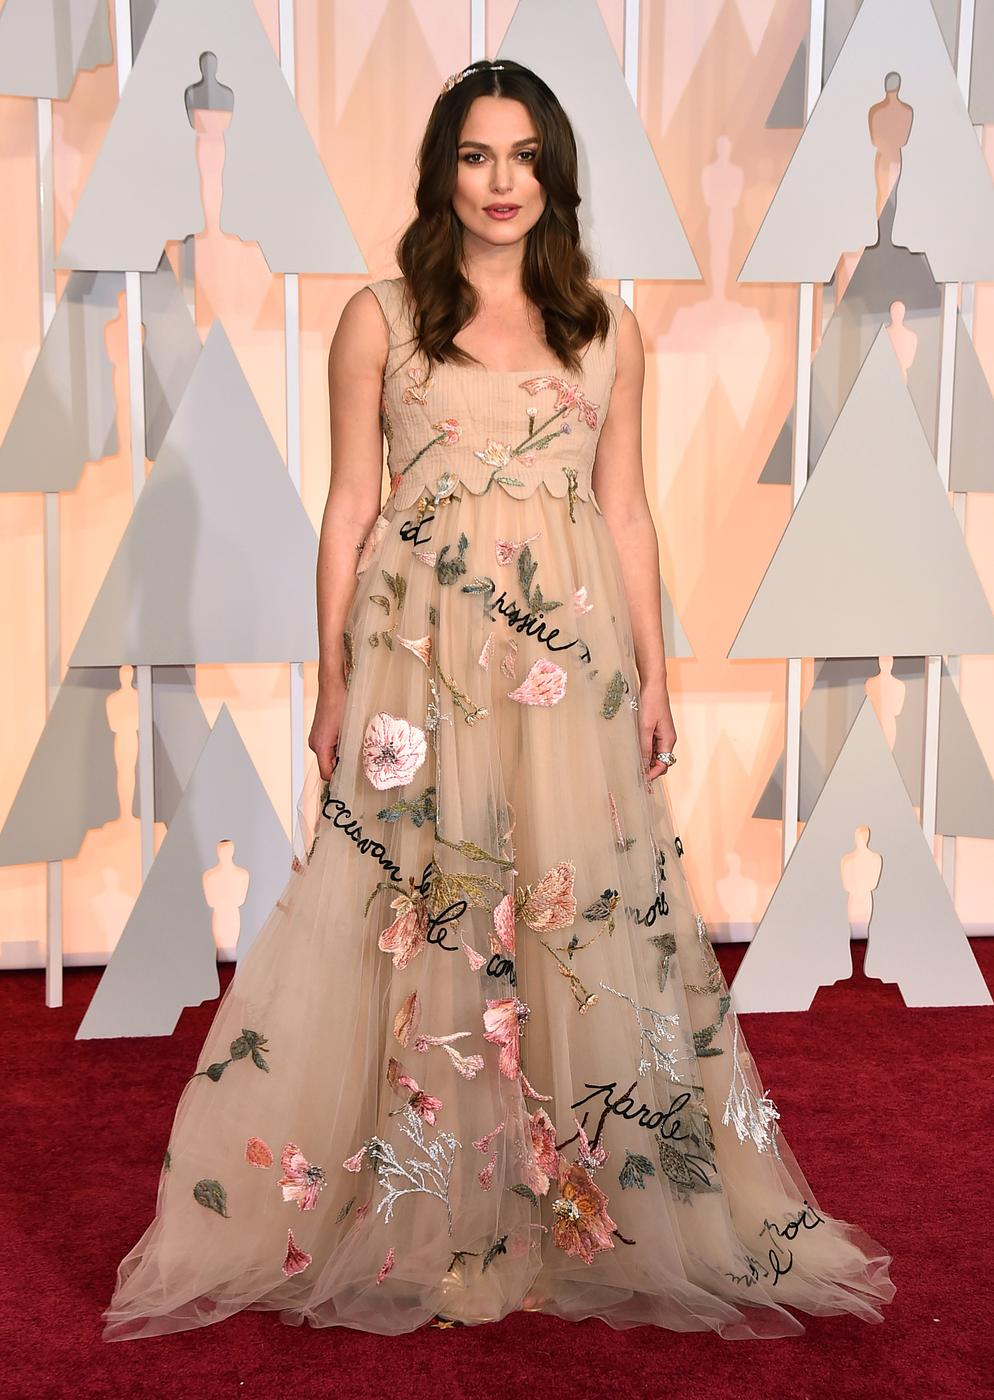 Keira Knightley arrives at the Oscars on Sunday, Feb. 22, 2015, at the Dolby Theatre in Los Angeles. (Photo by Jordan Strauss/Invision/AP) Jordan Strauss/Invision/AP